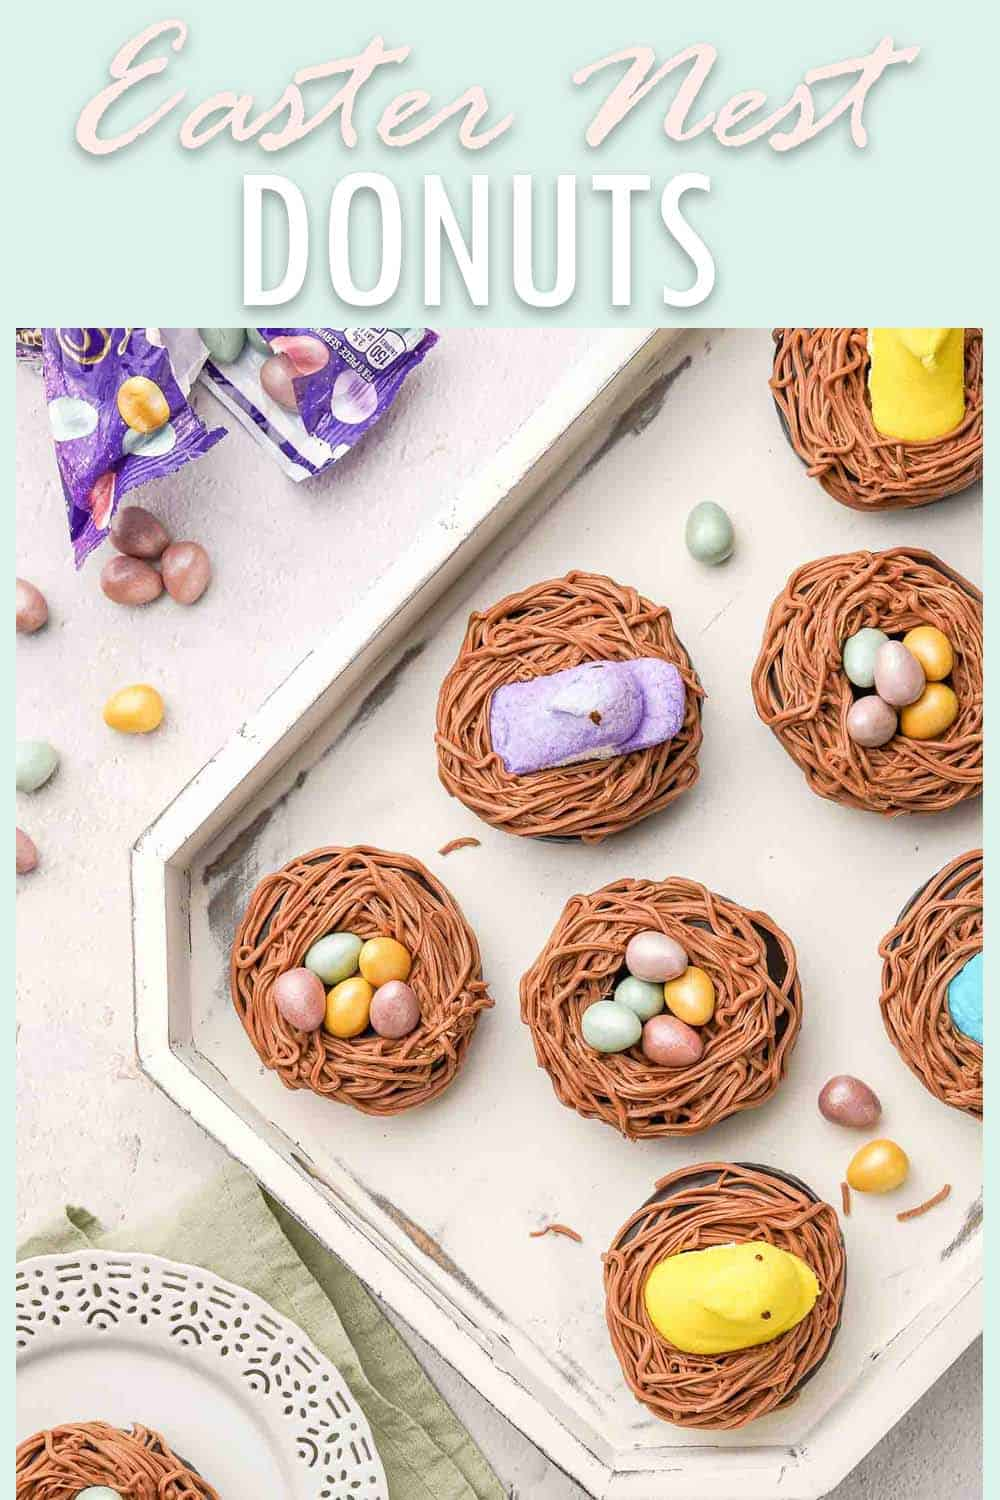 Easter Nest Donuts in Tray with plate and candy eggs on the side